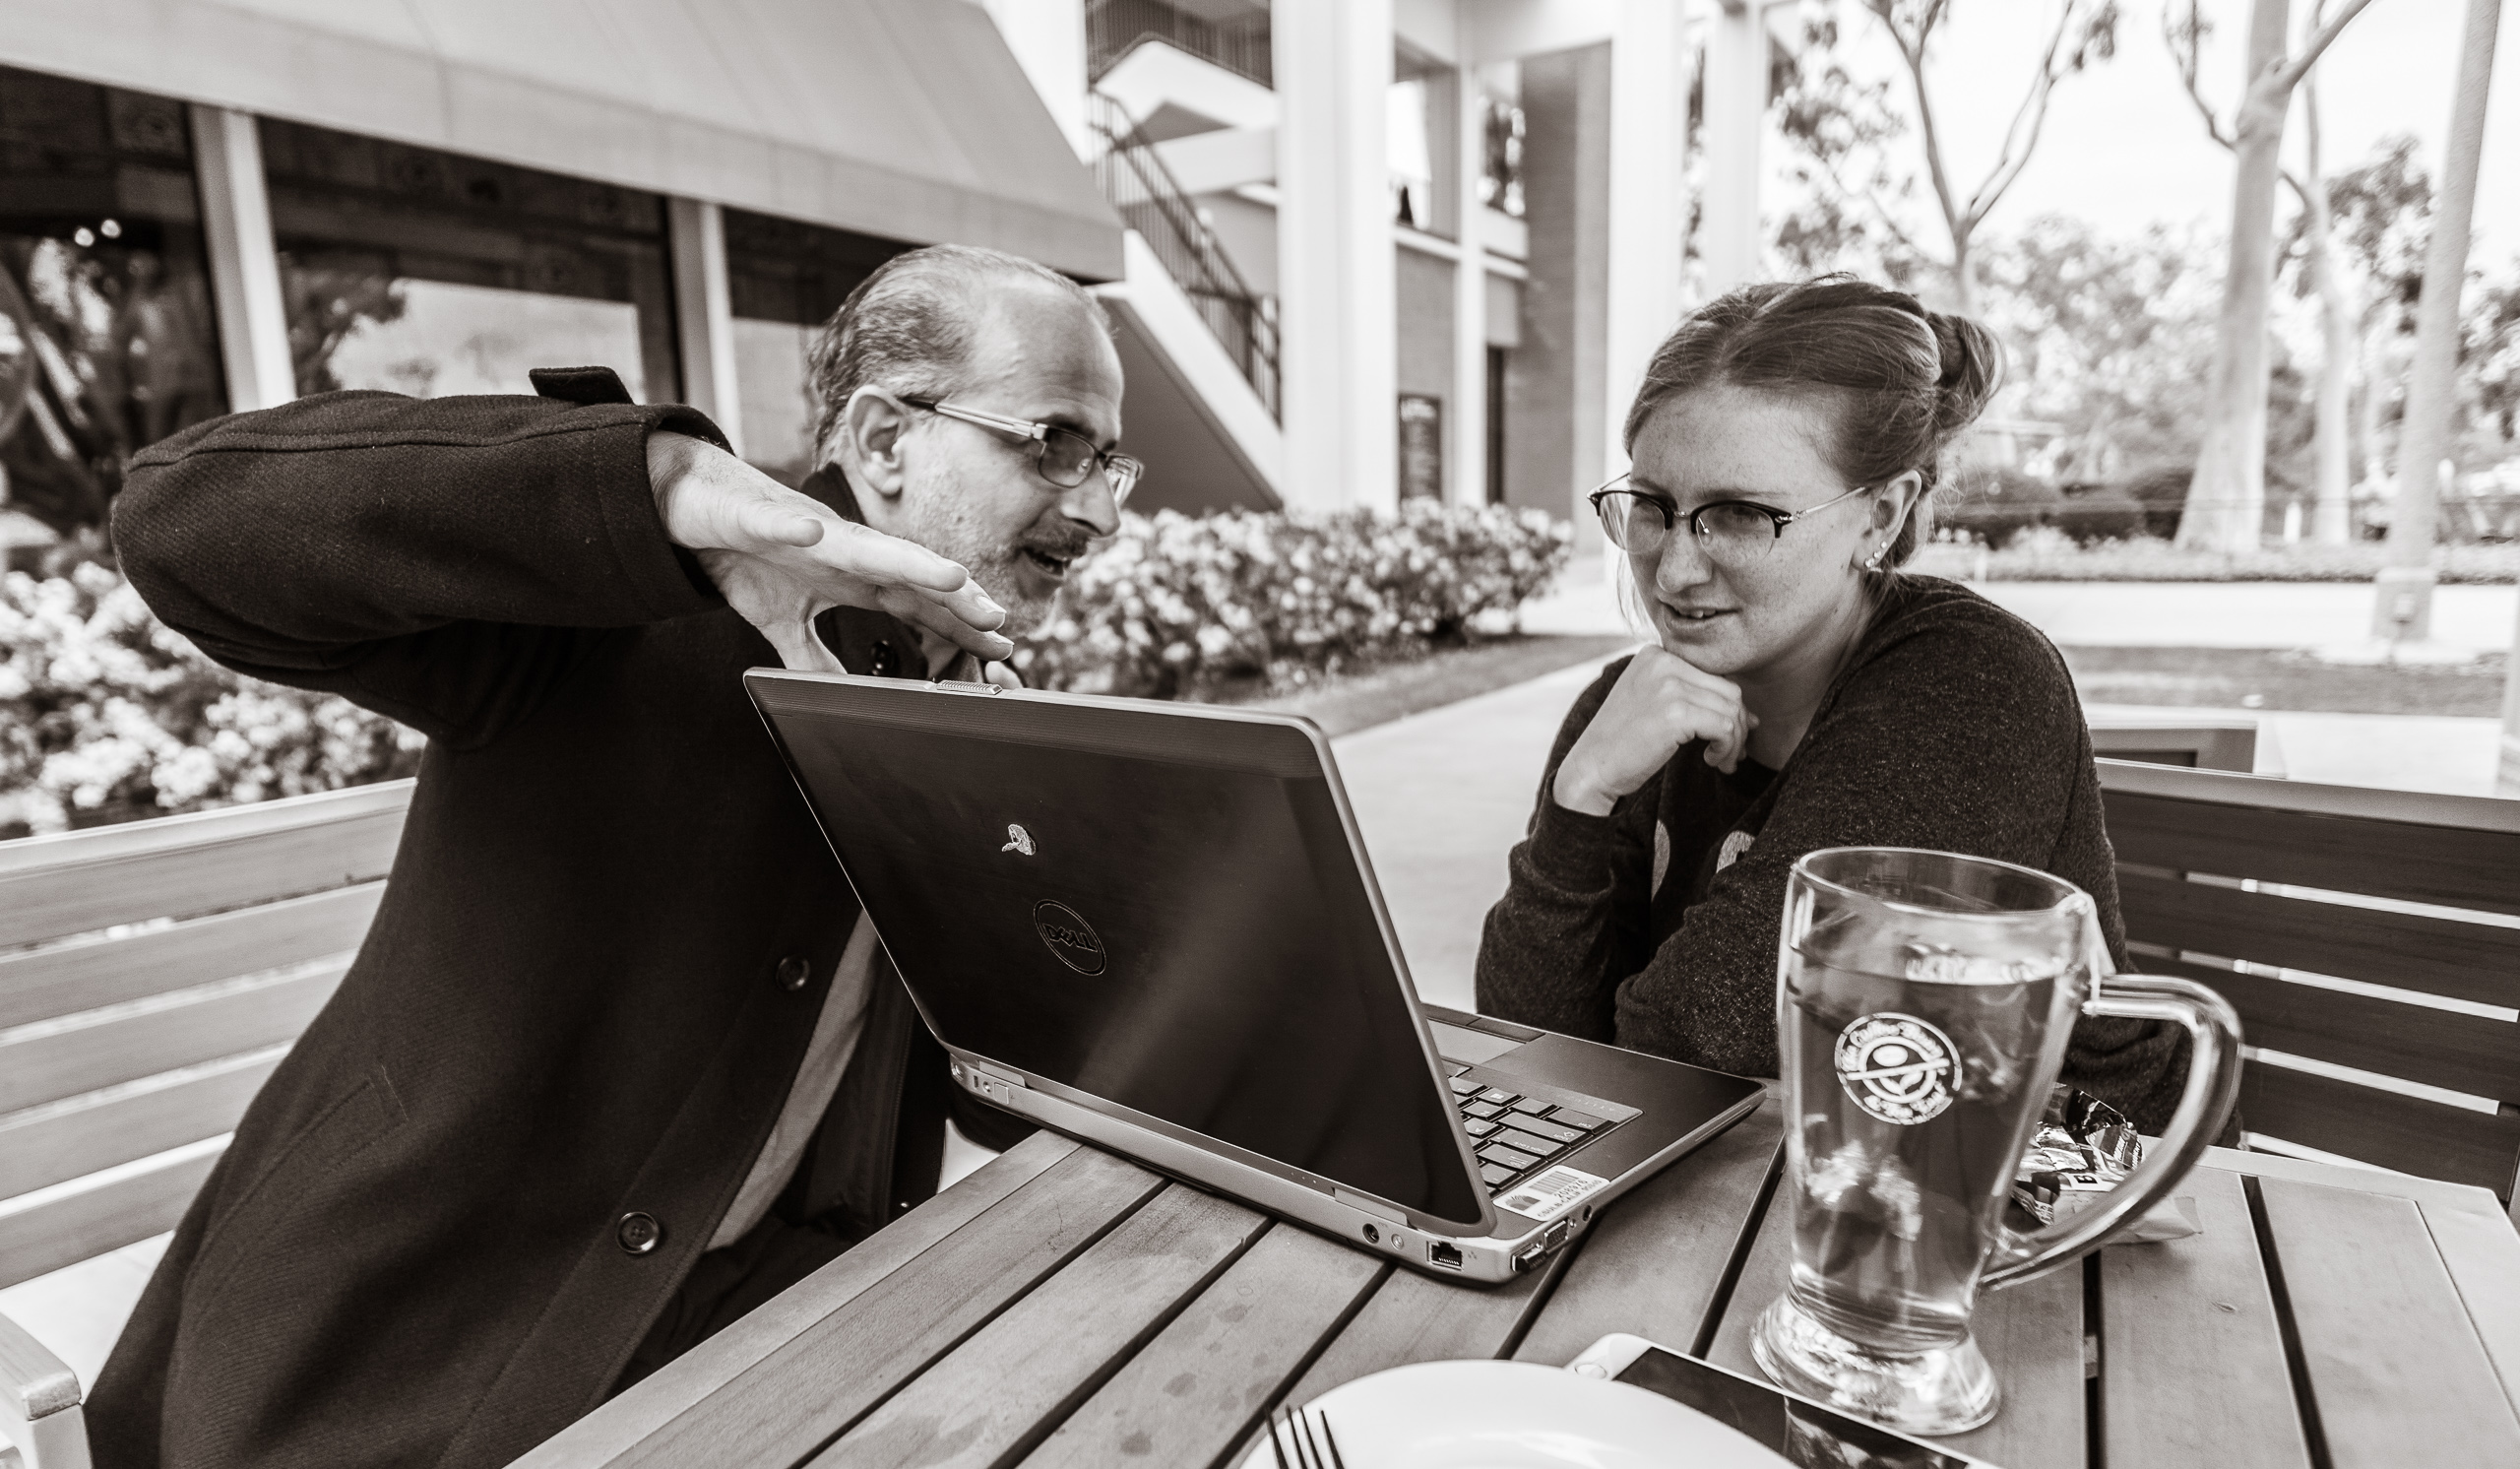 Dr. J and Julie Pavlacka sit at a table outside Coffee Bean & Tea Leaf at the University Student Union (USU) at Long Beach State University (LBSU / CSULB) and have an animated conversation over a laptop.